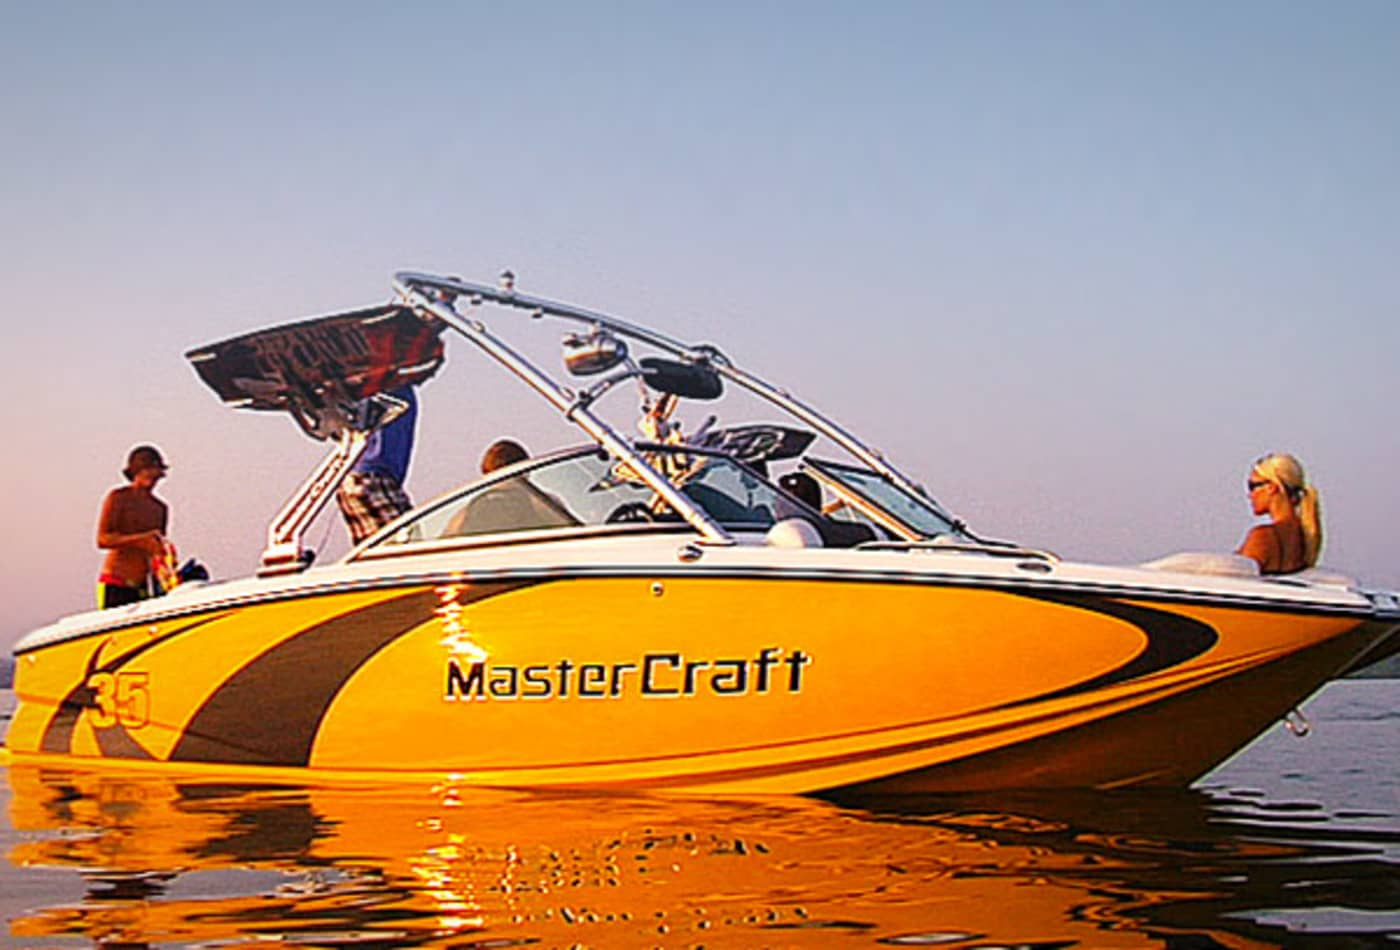 Scenes-from-2012-boat-show-mastercraft.jpg